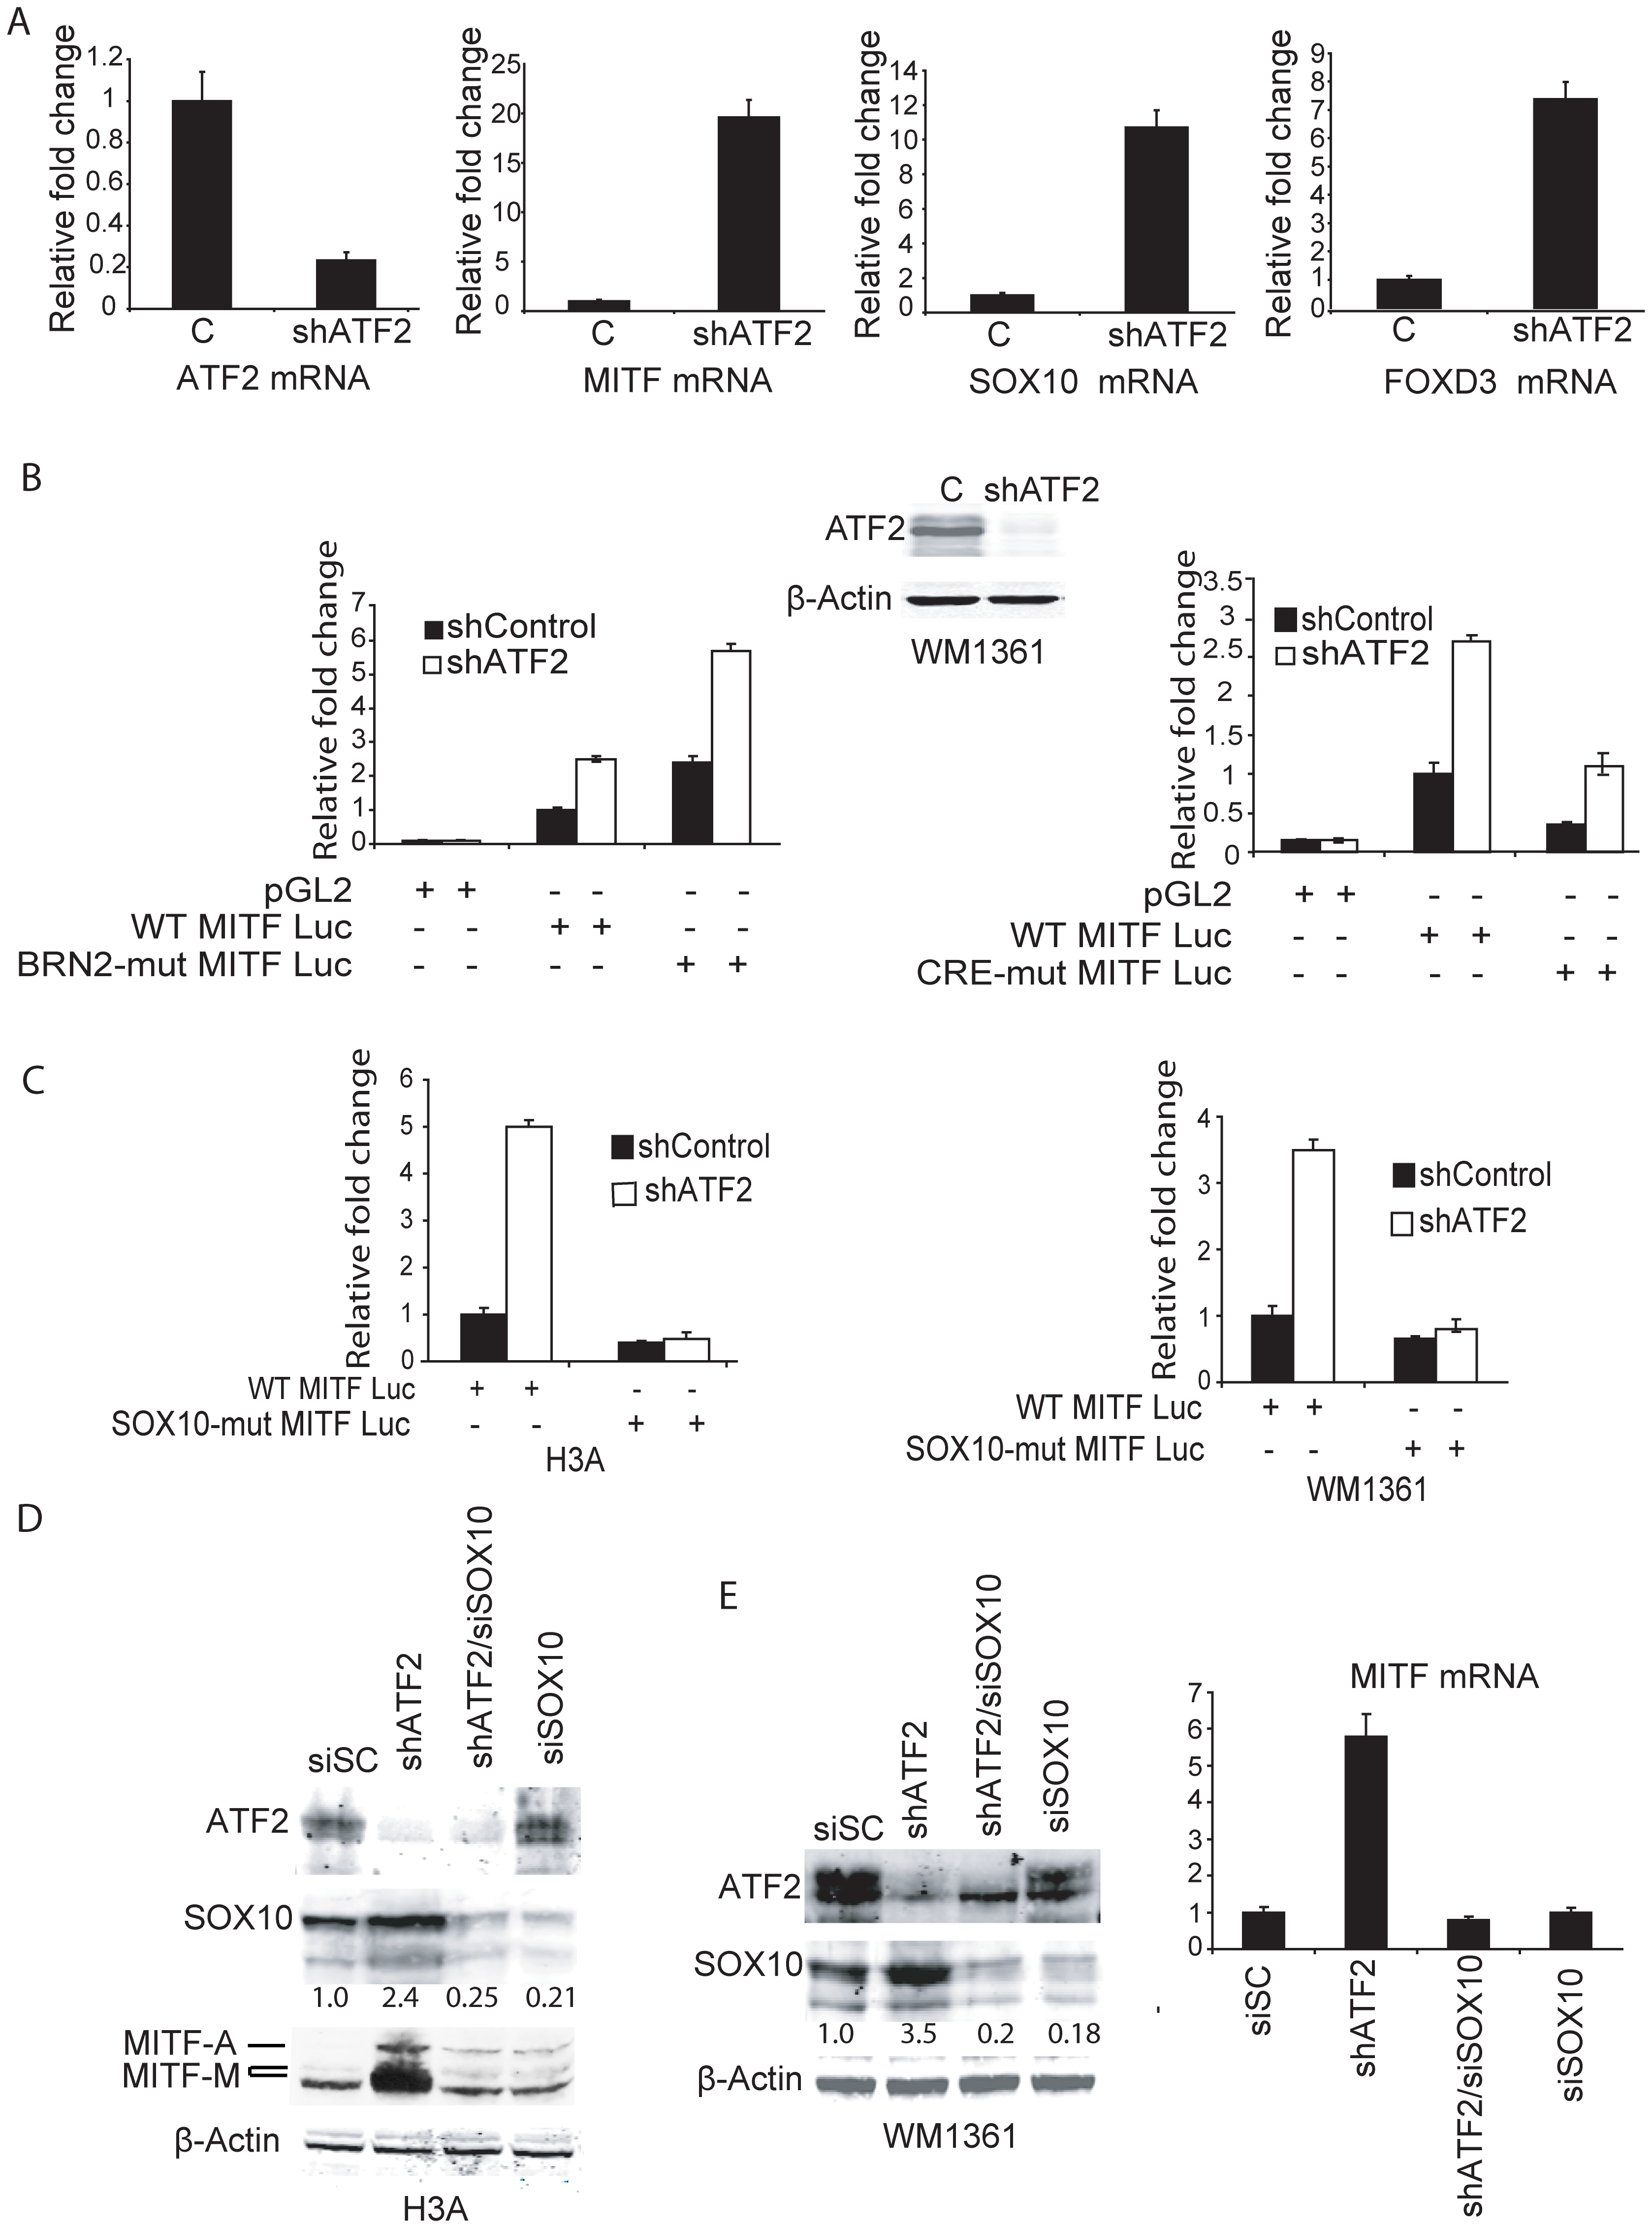 Negative regulation of MITF by ATF2 is mediated by SOX10.